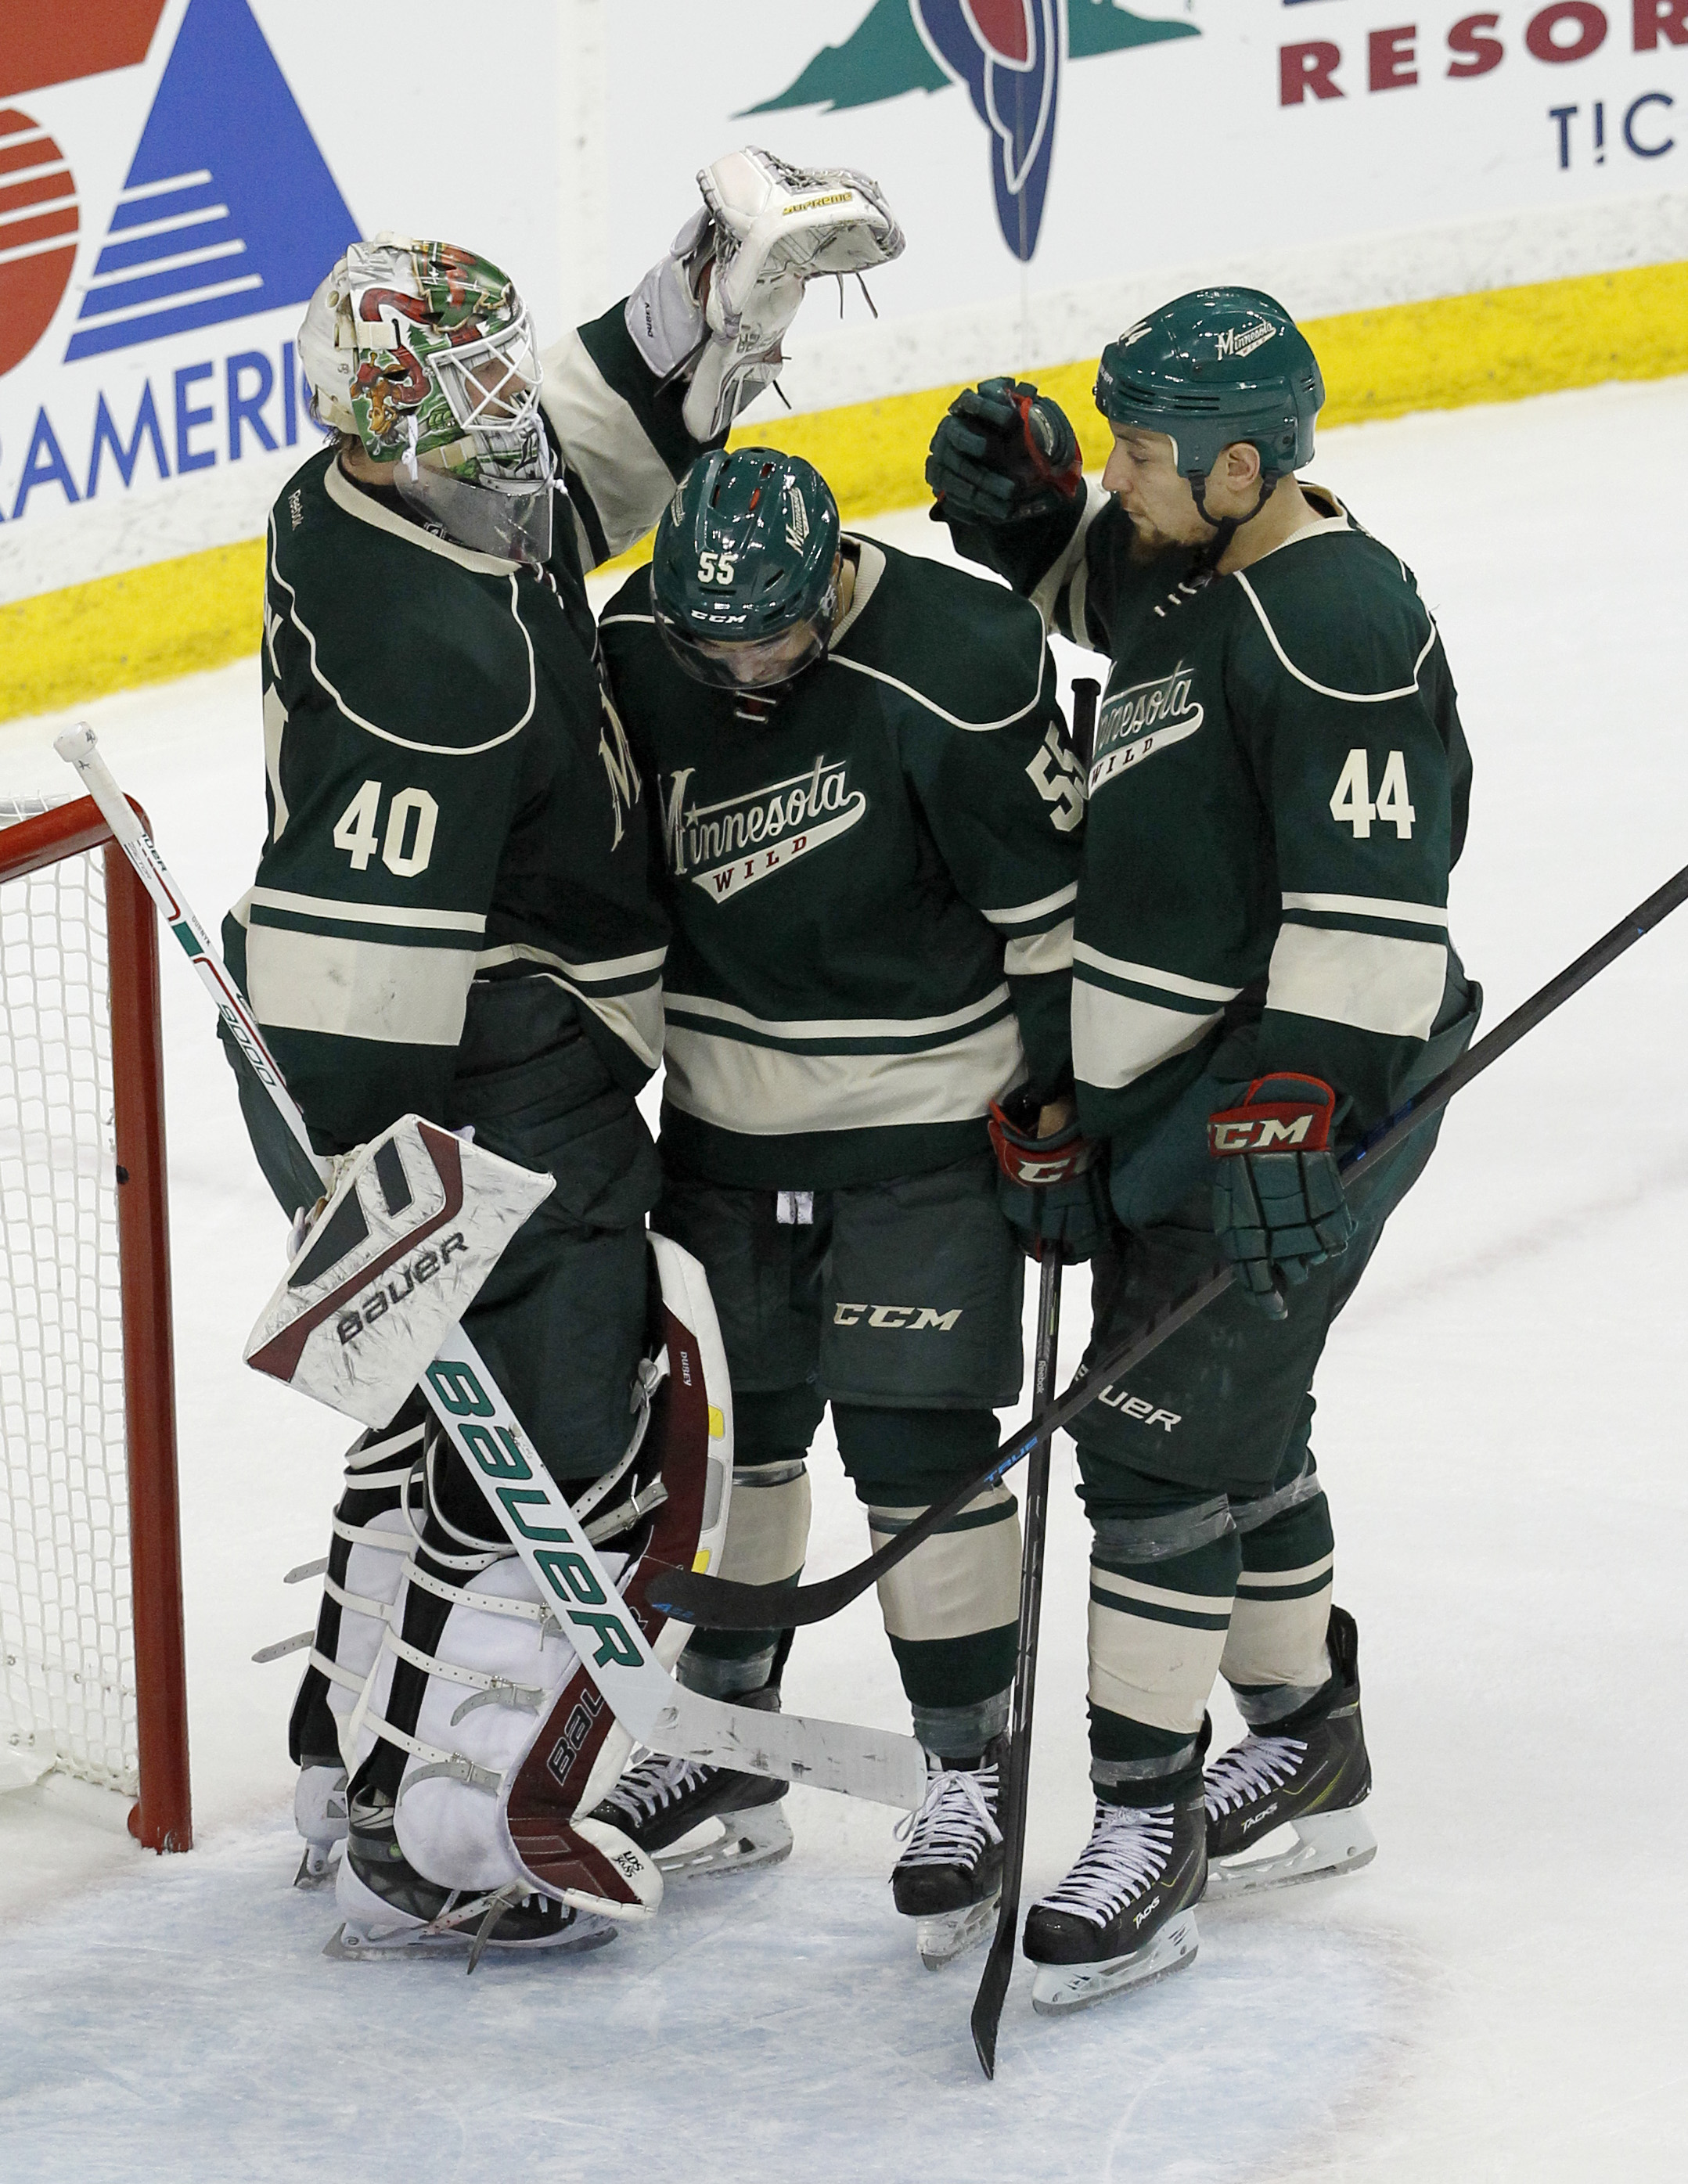 Minnesota Wild goalie Devan Dubnyk (40) celebrates with defenseman Matt Dumba, center, and right wing Chris Stewart (44) after the Wild defeated the St. Louis Blues 3-0 in Game 3 of an NHL hockey first-round playoff series game in St. Paul, Minn., Monday,